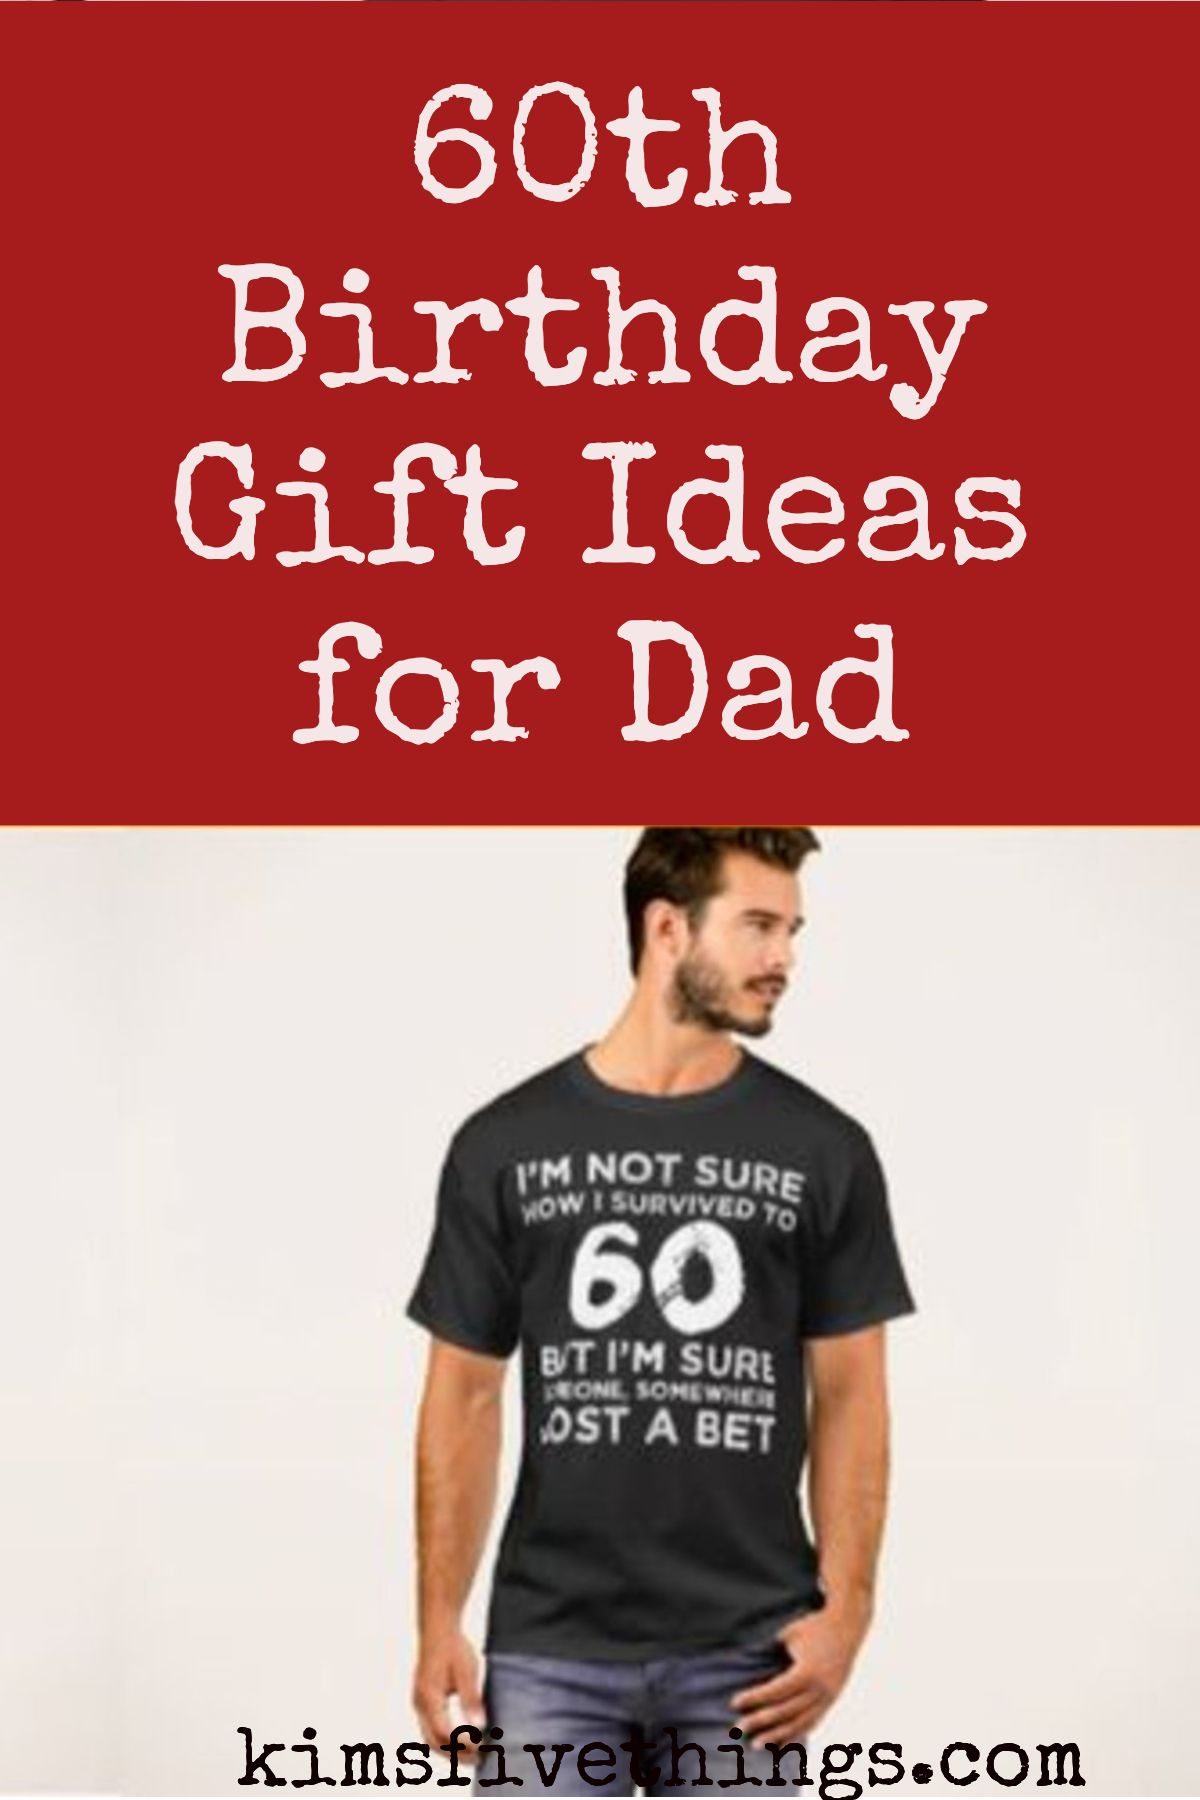 Best 60th Birthday Gift Ideas for Dad 60th birthday